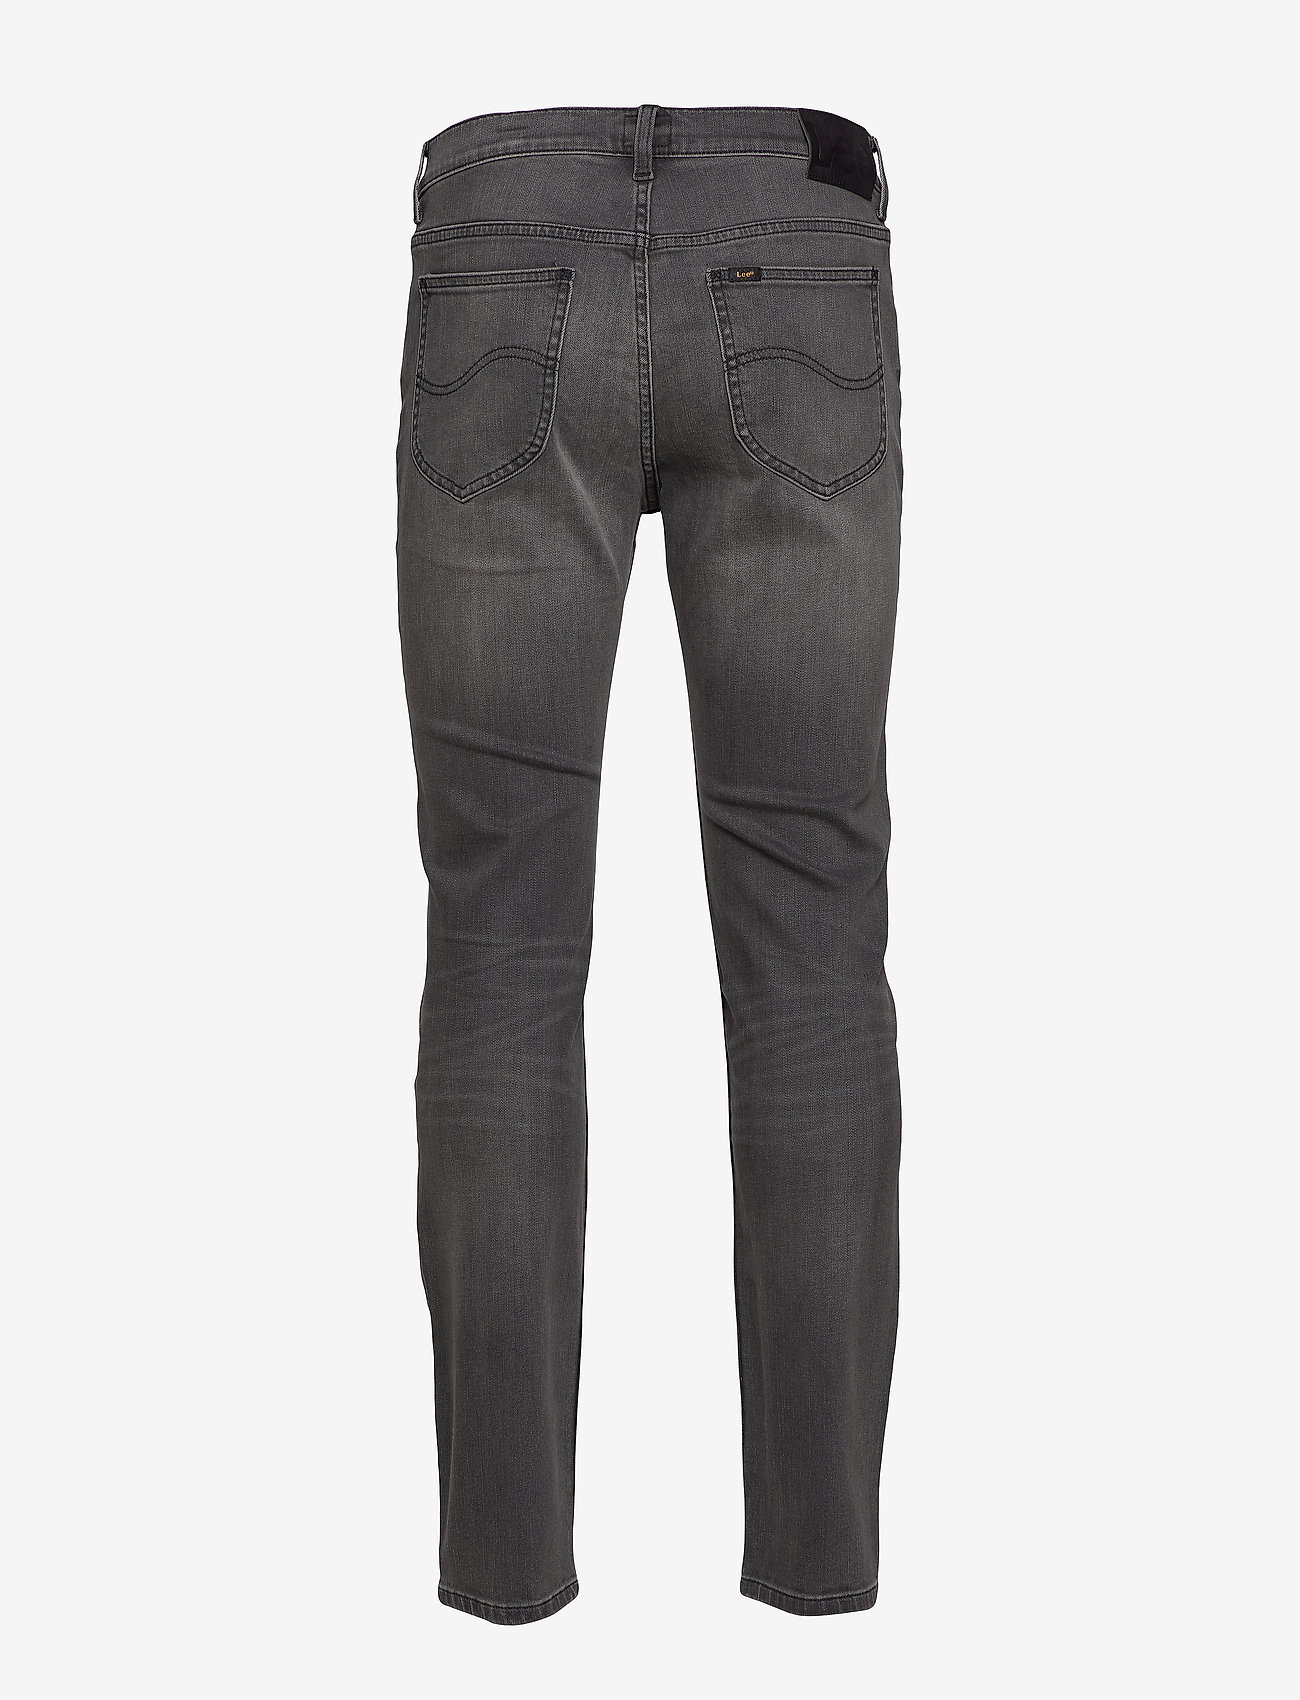 Lee Jeans - RIDER - regular jeans - moto worn in - 1